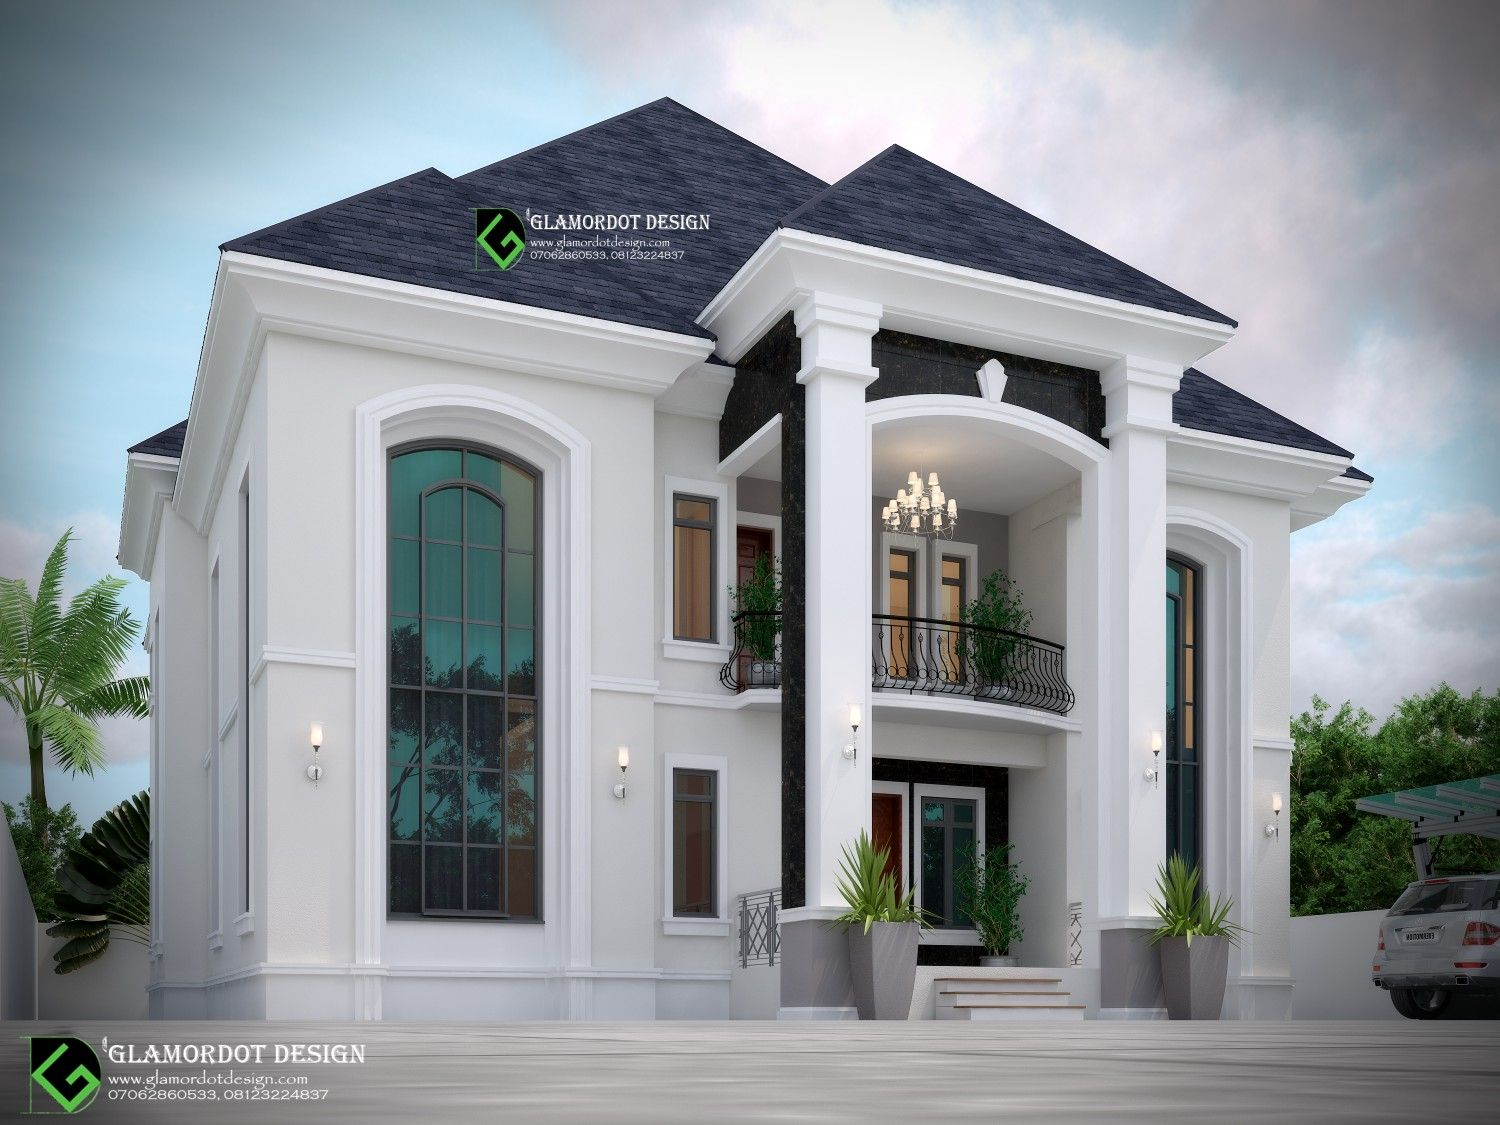 Architectural Design Of A Proposed 5 Bedroom Duplex Benin Nigeria For Inquiries Duplex House Design Classic House Design Metal Building House Plans